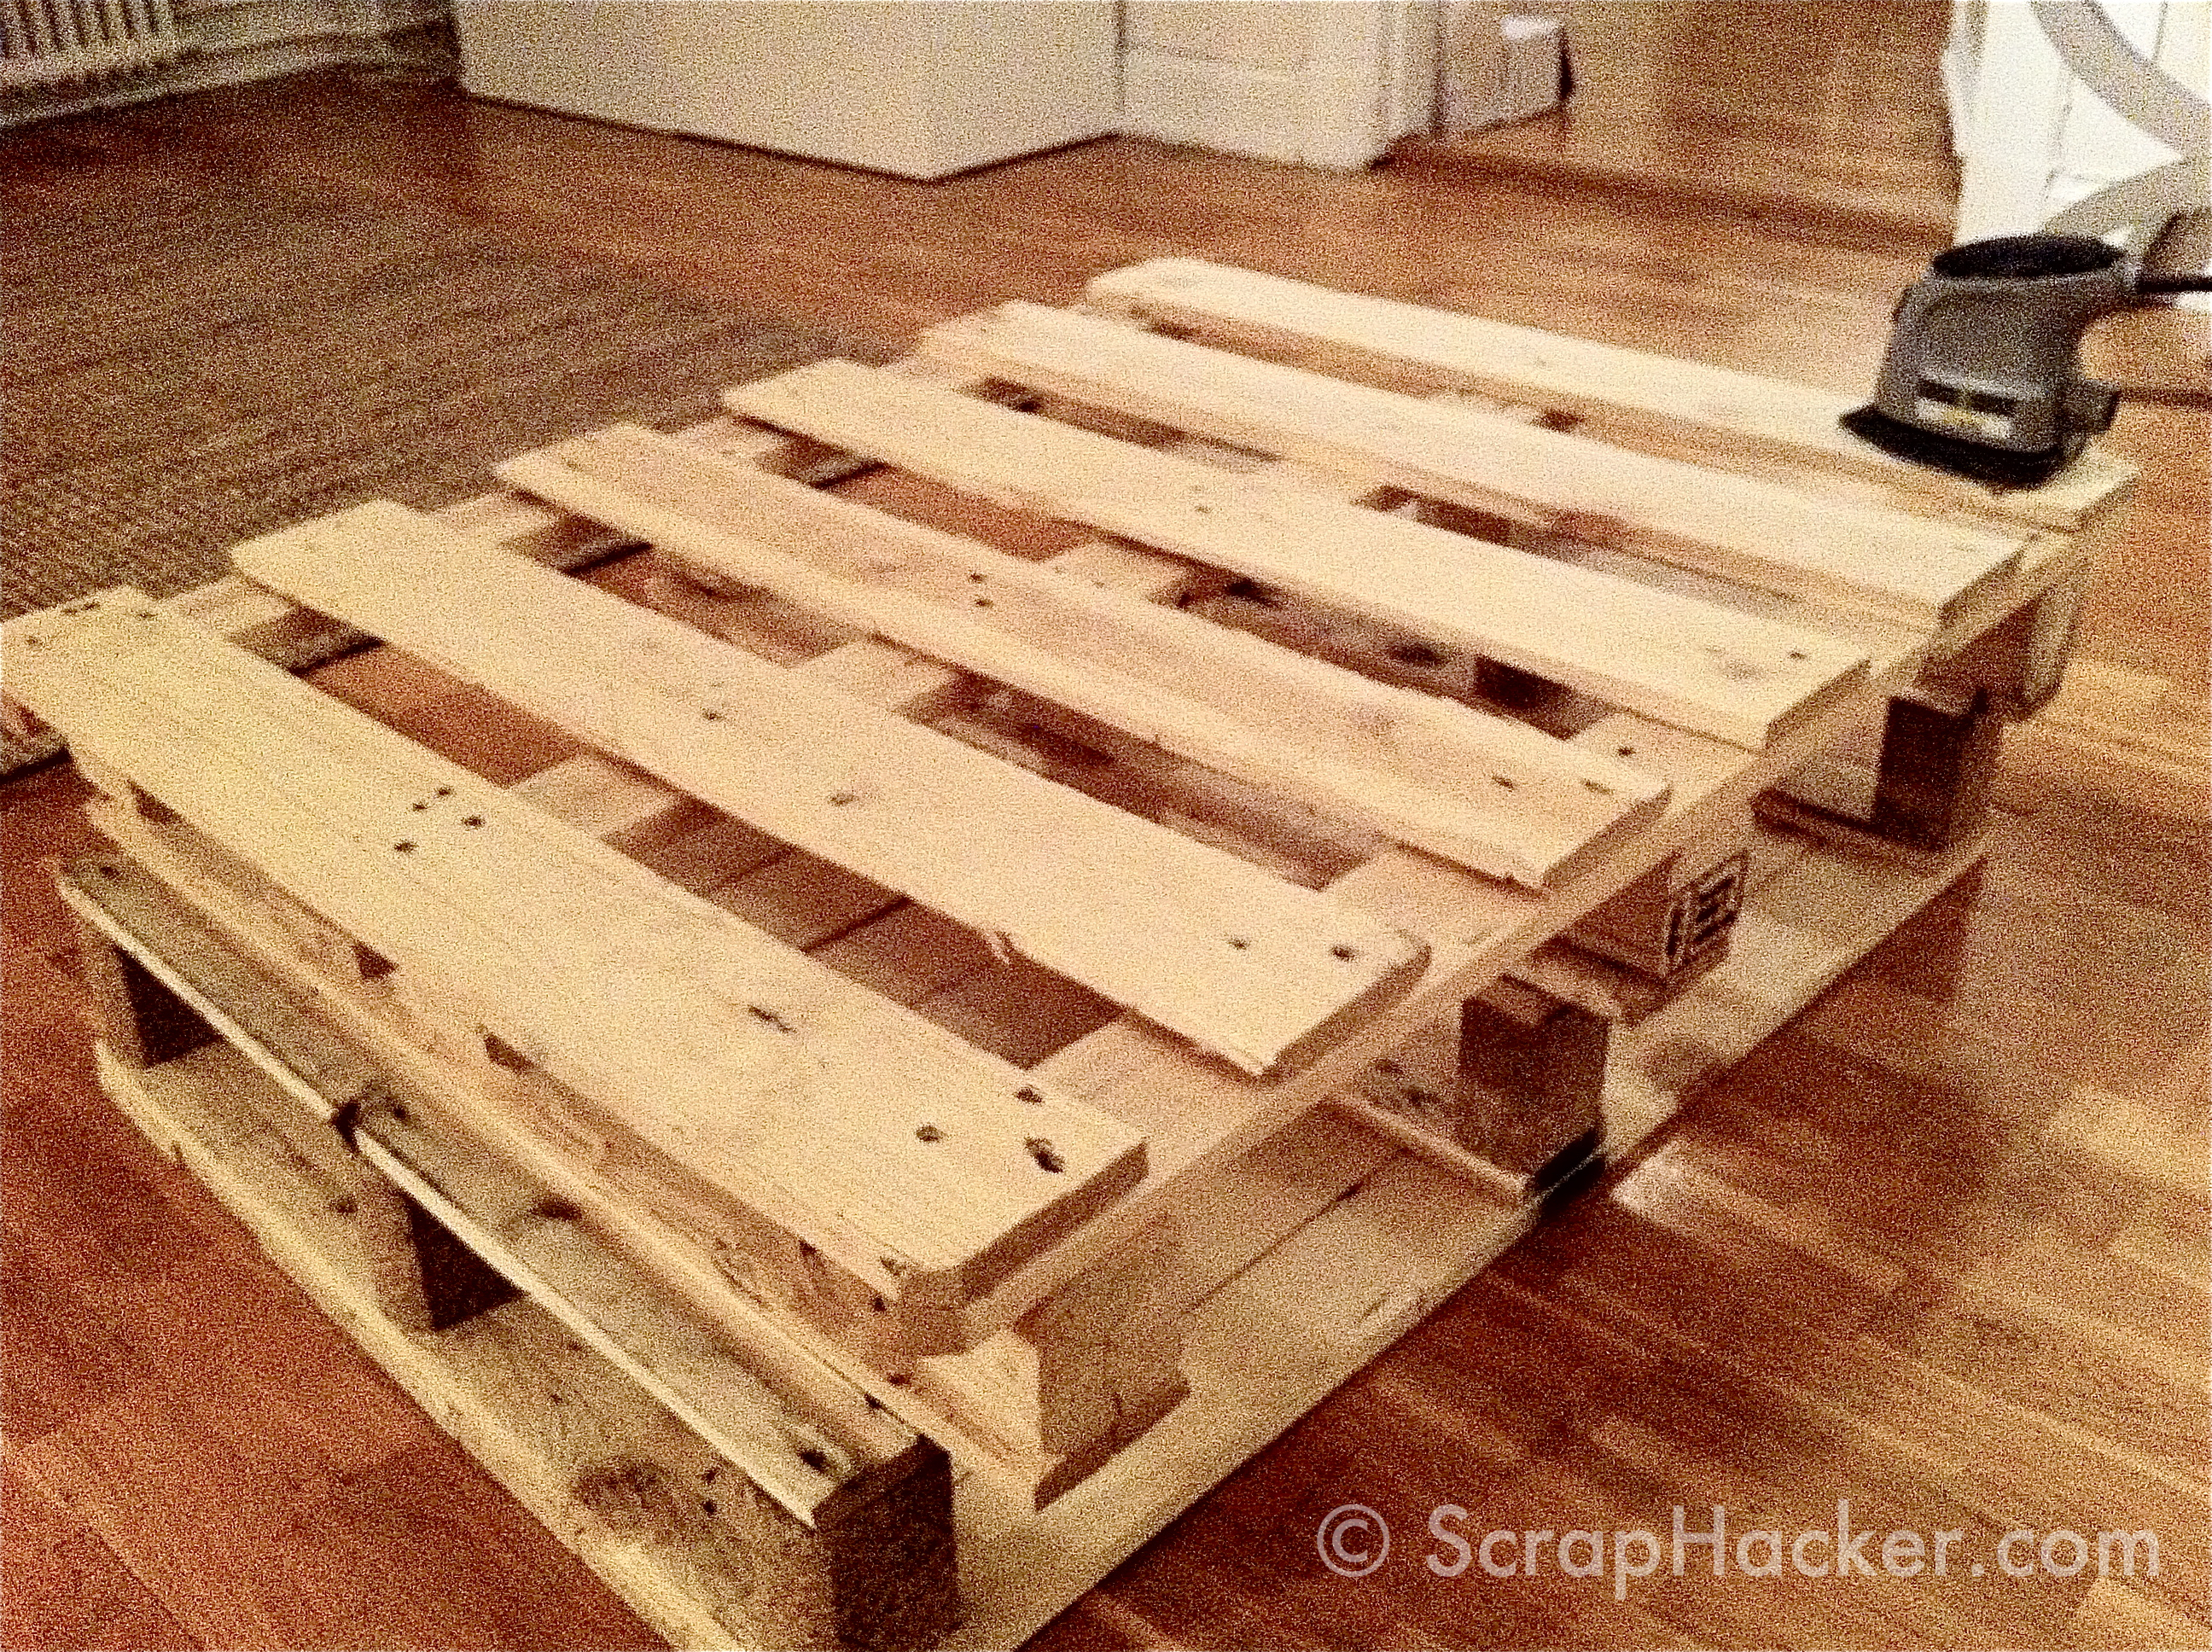 Diy pallet furniture instructions furnitureplans for Homemade furniture instructions